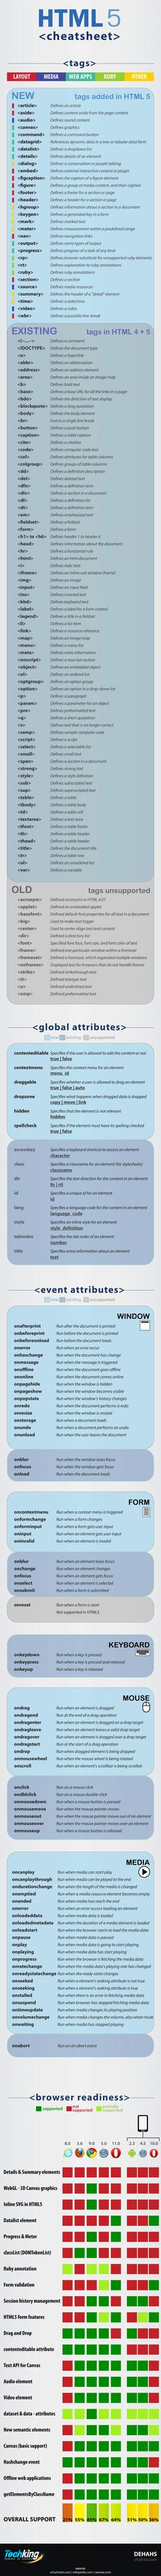 Ultimate HTML5 Cheatsheat #infographic #HTML5